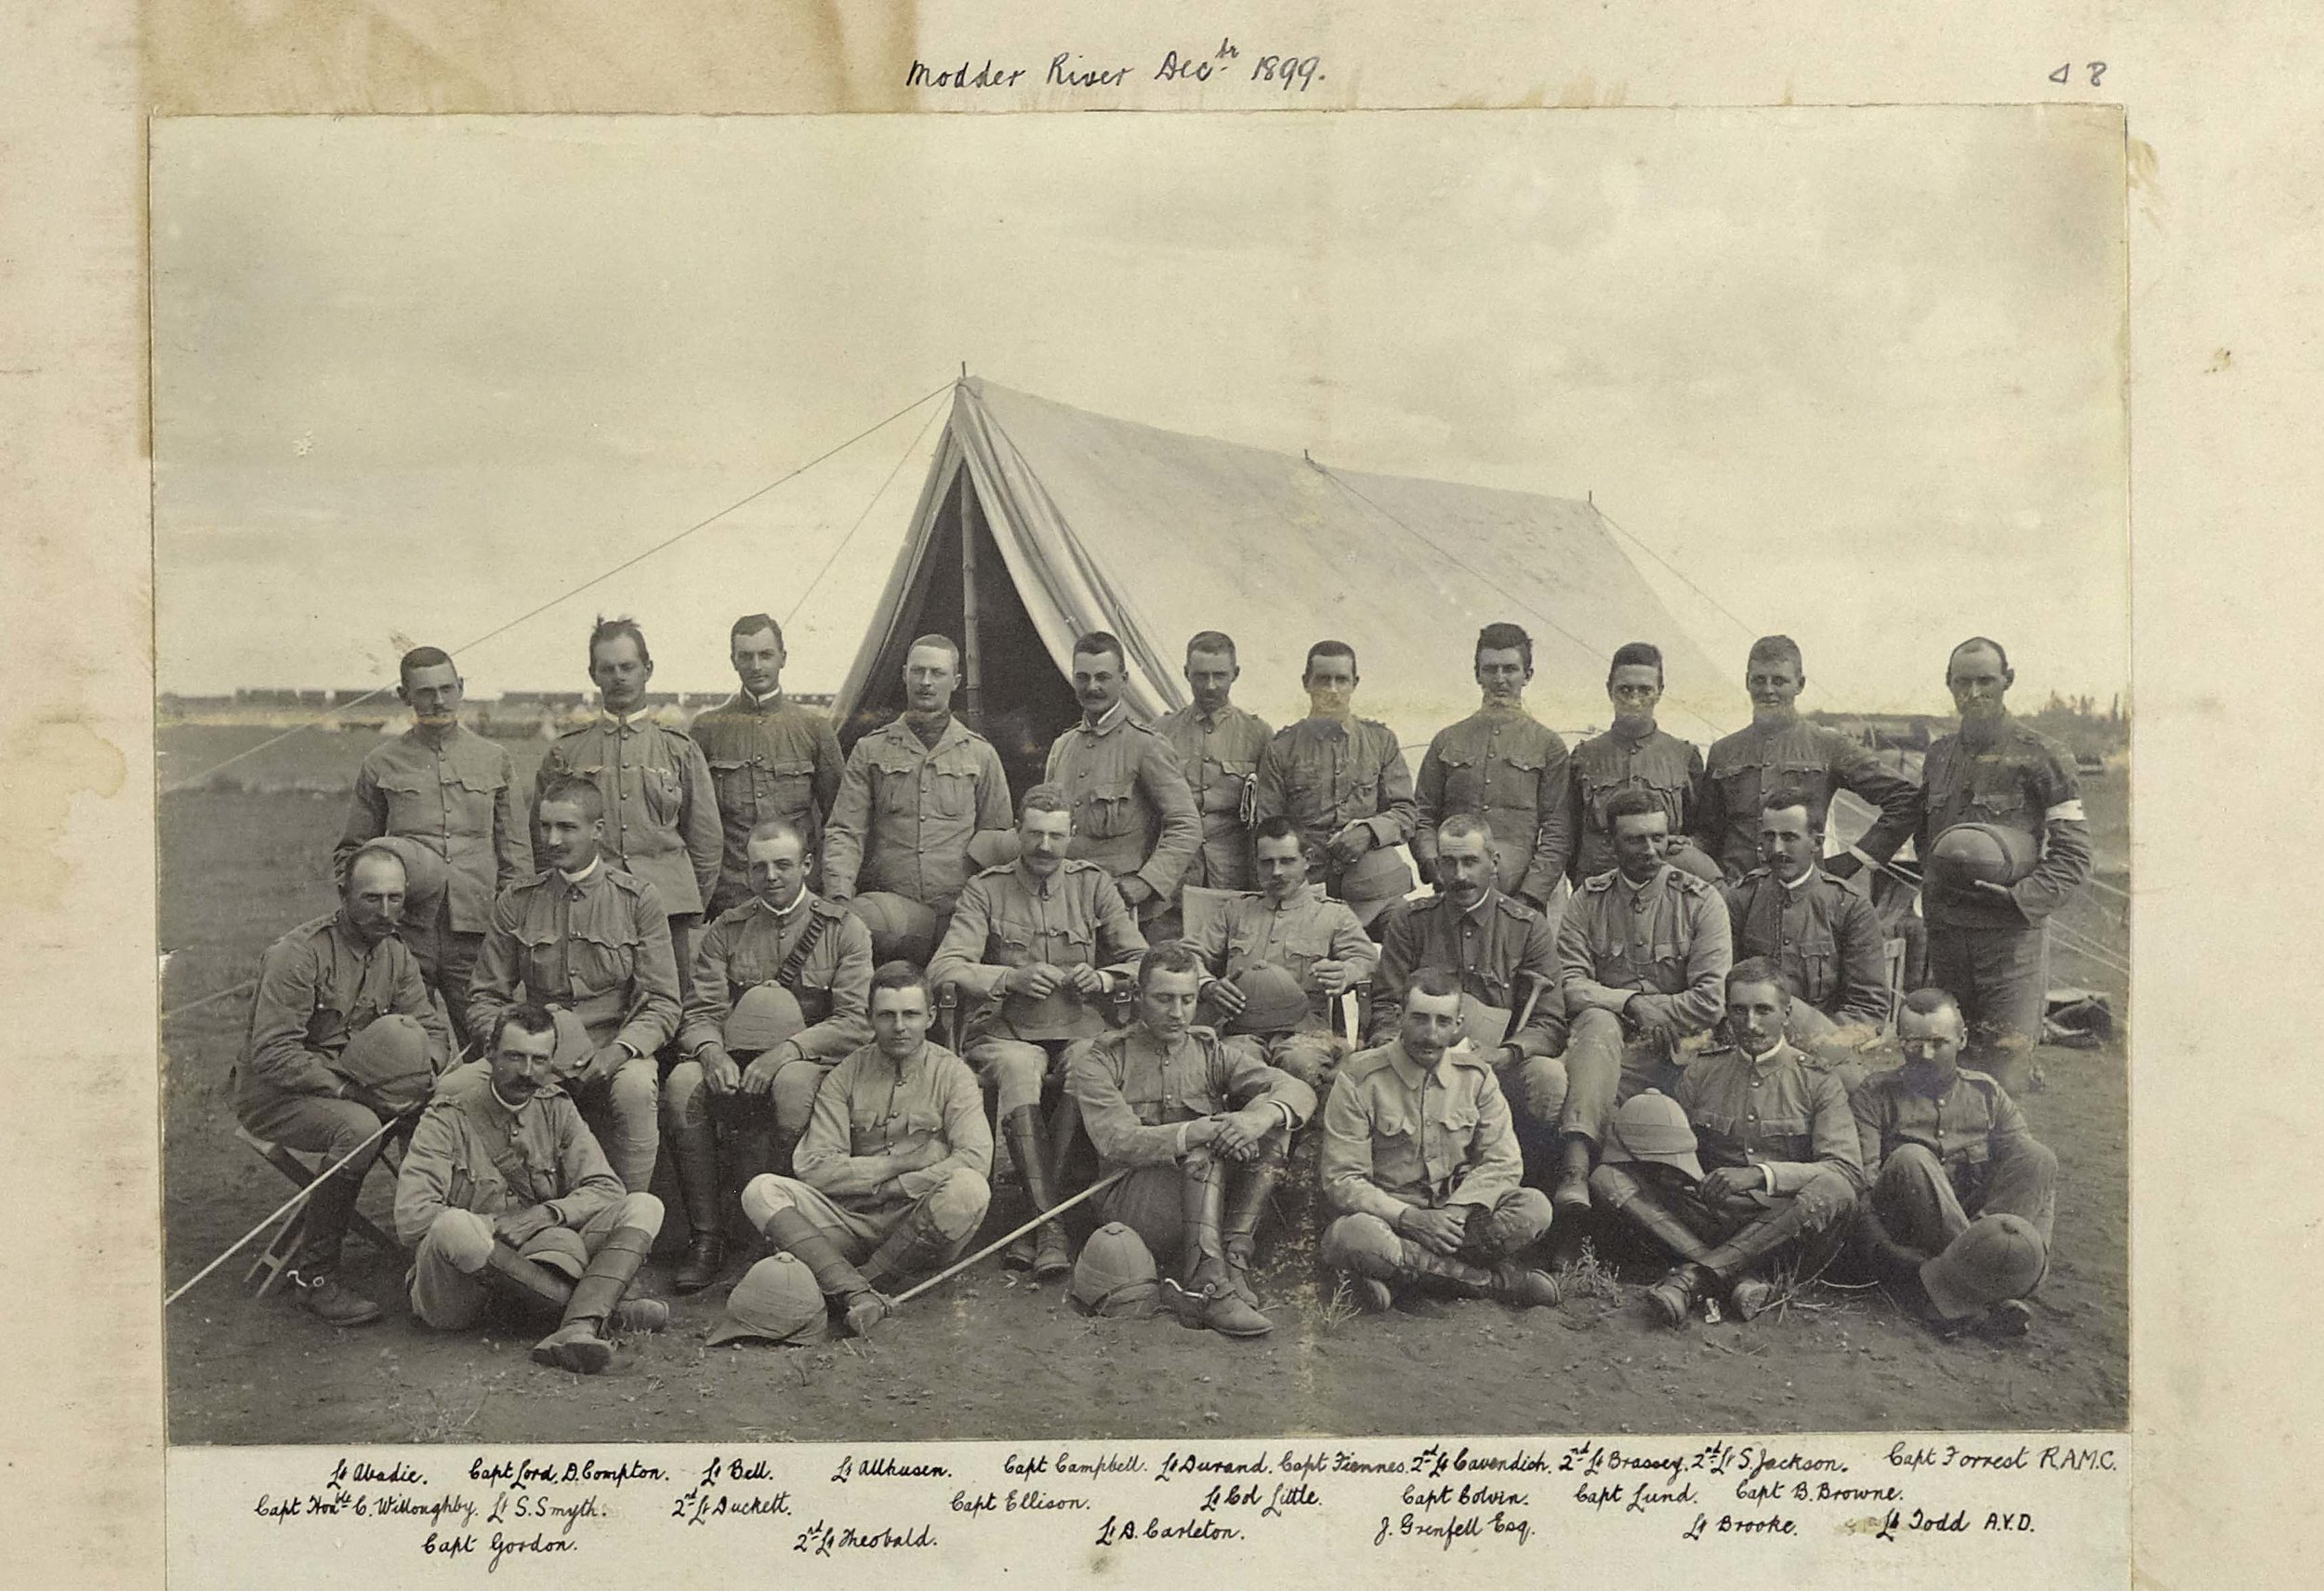 Officers of the 9th Lancers at the Modder River, South Africa, in December 1899, including Captain Edward Robertson Gordon (lower left), Major Colvin and Lieutenant Abadie, authors of the diaries cited here. Of this group, Brassey was killed, Ellison died of disease, Cambell, Gordon, Durand, Cavendish, Sadleir-Jackson, Little and Brooke were wounded, and Theobald became a prisoner of war. J. Grenfell Esq' is likely to be John Pascoe Grenfell, a Lieutenant in the Buckinghamshire Yeomanry and brother of Captain Francis Octavius Grenfell, who won the V.C. with the 9th Lancers during the First World War (copyright 9th/12th Lancers Regimental Museum, Accession No 2090-16-48).